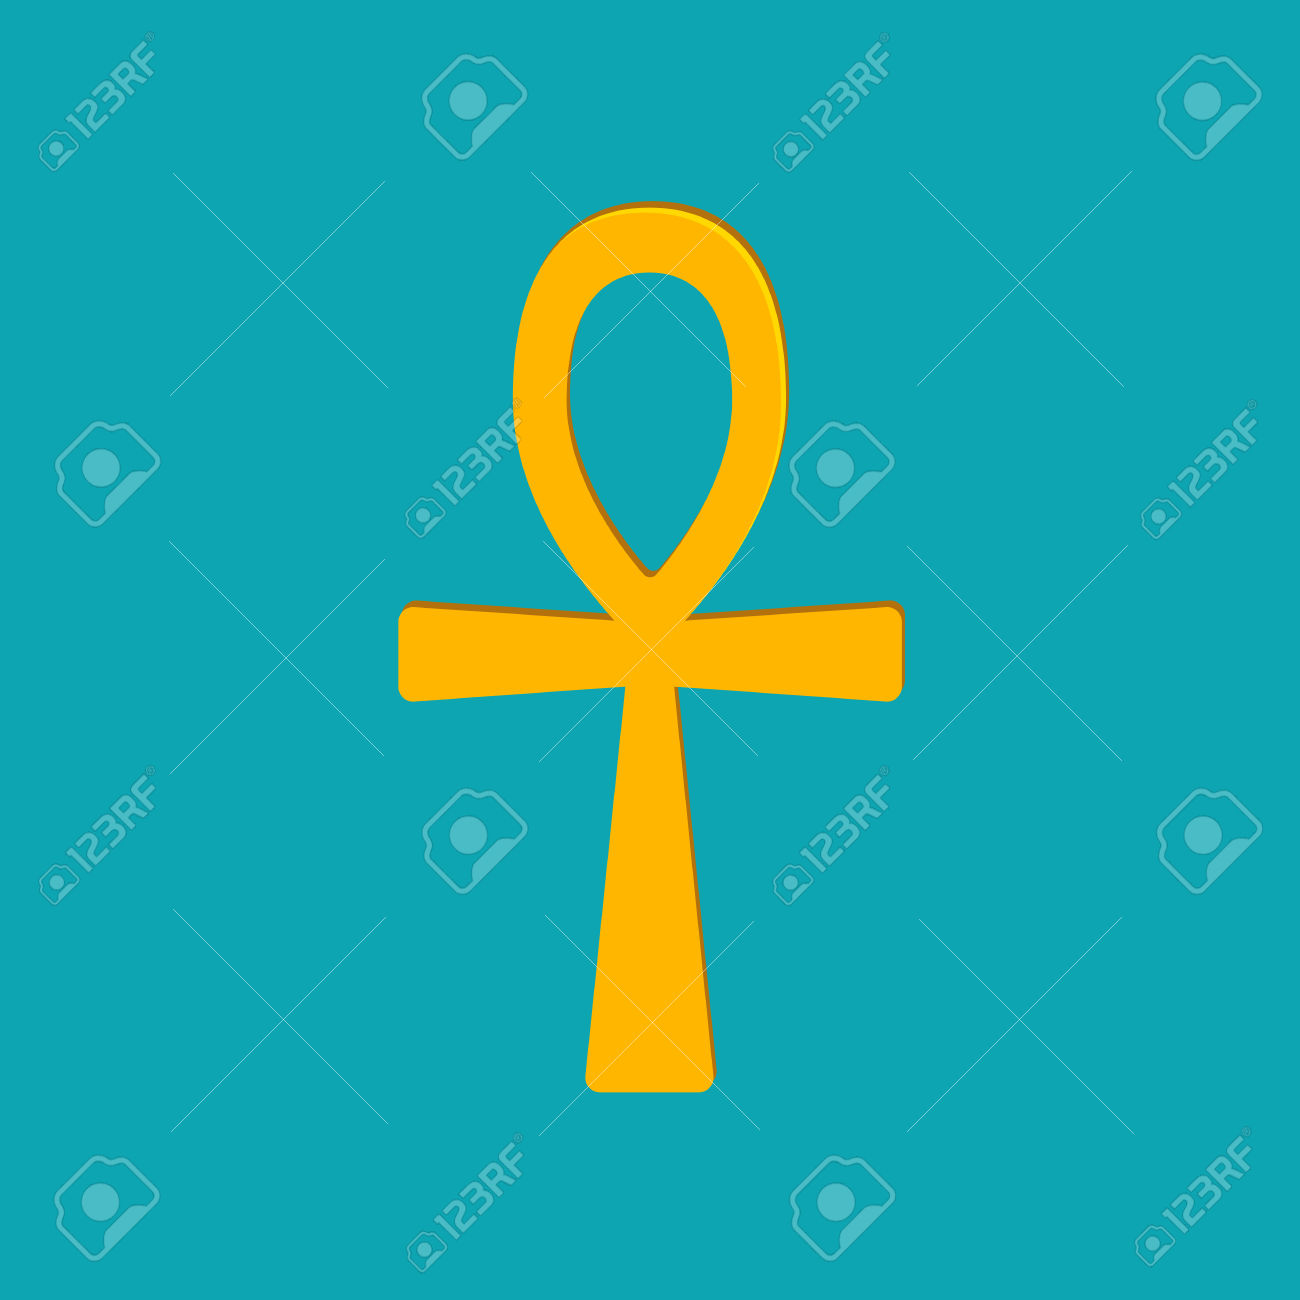 Ankh Hieroglyph, Or Key Of Life, Key Of Nile, Crux Ansata. Ancient.